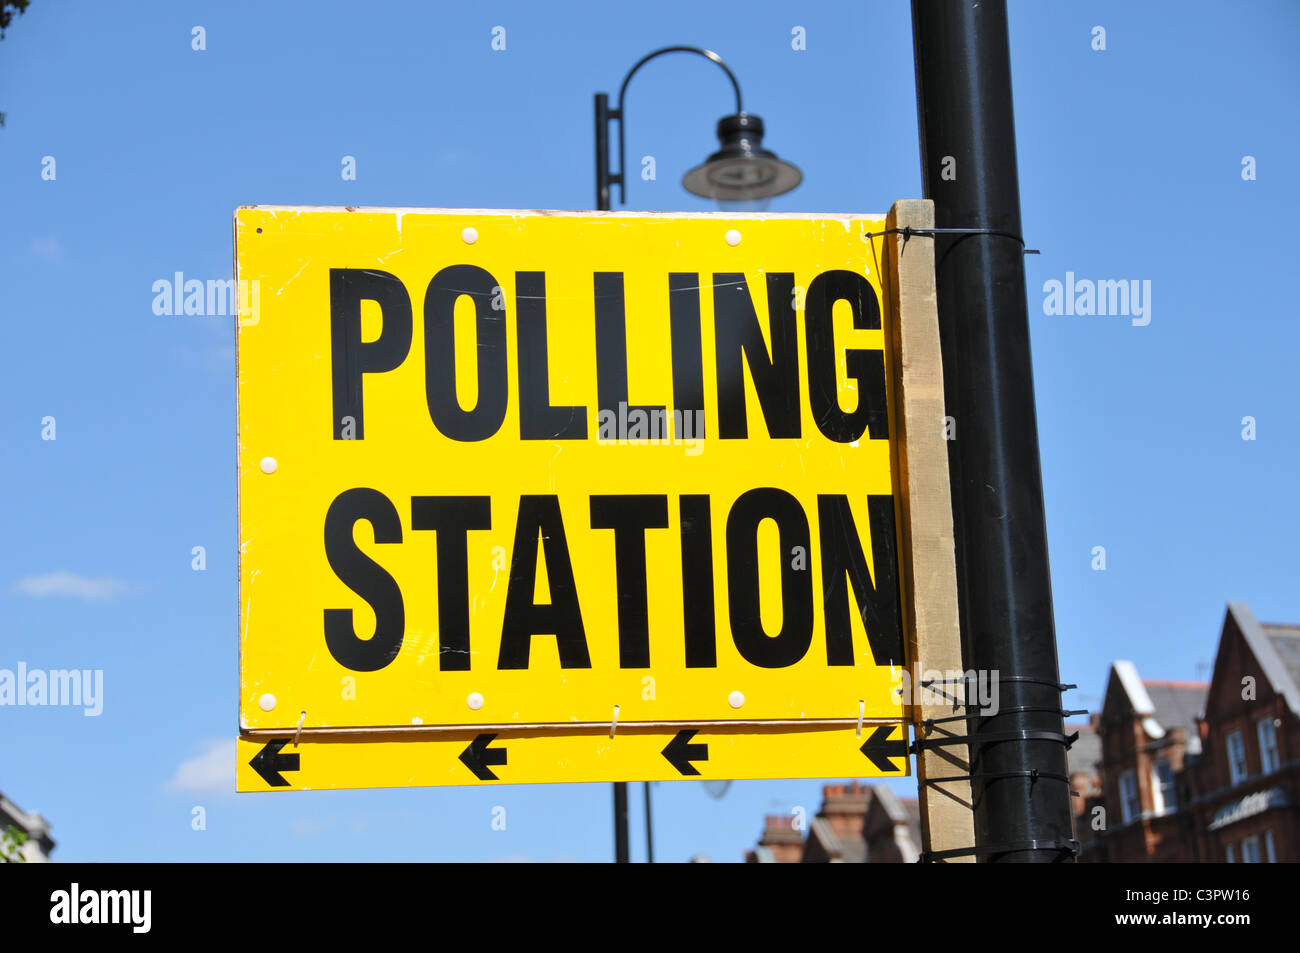 UK England Polling station election sign Council General elections - Stock Image